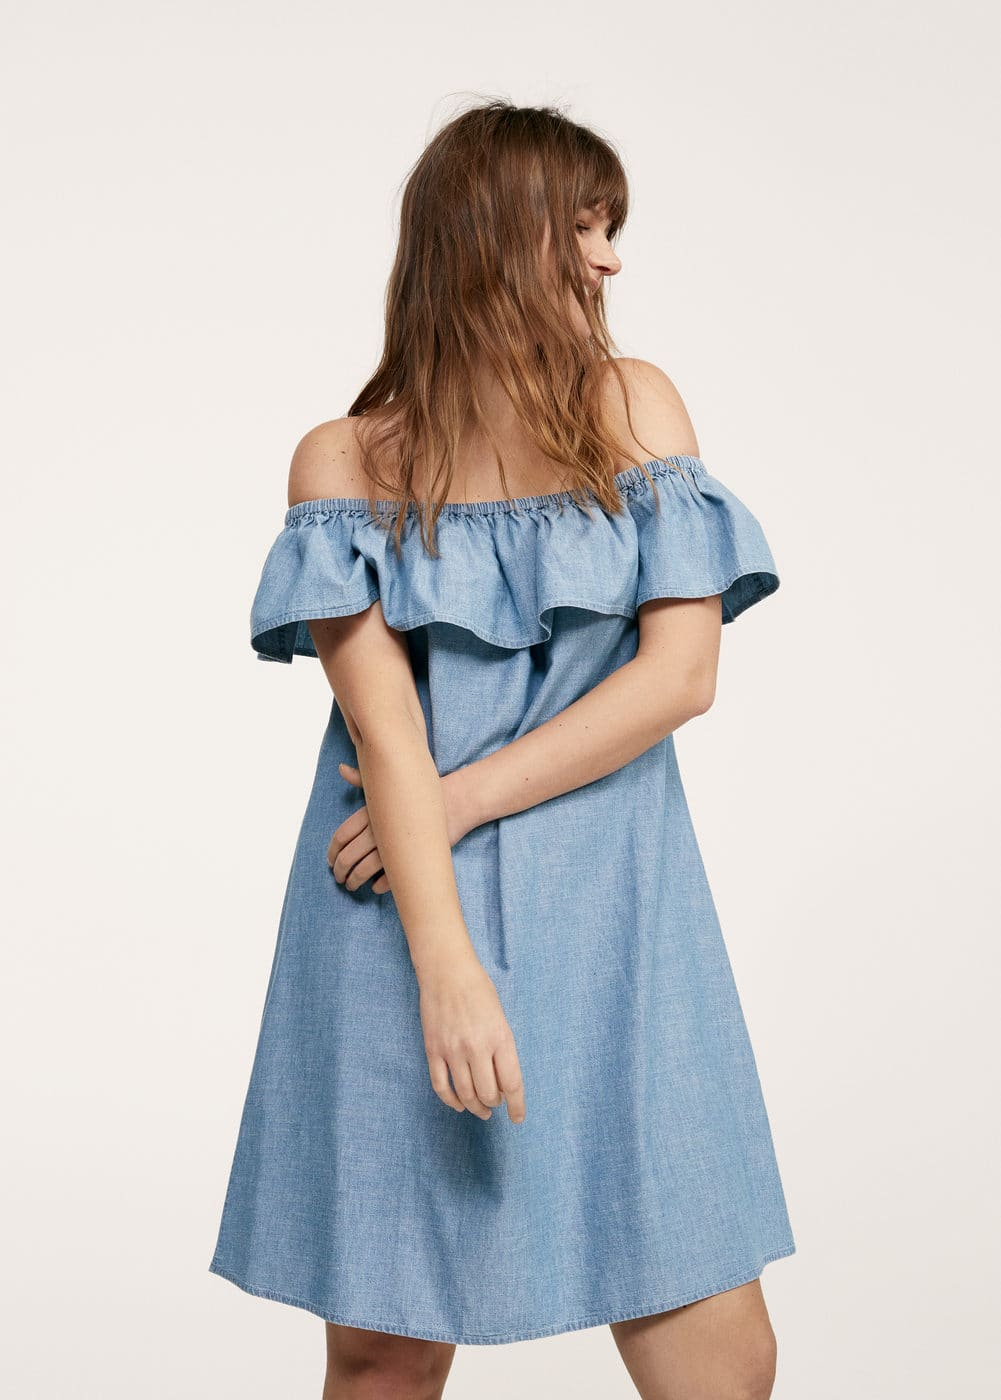 Vestido off-shoulder denim | VIOLETA BY MNG